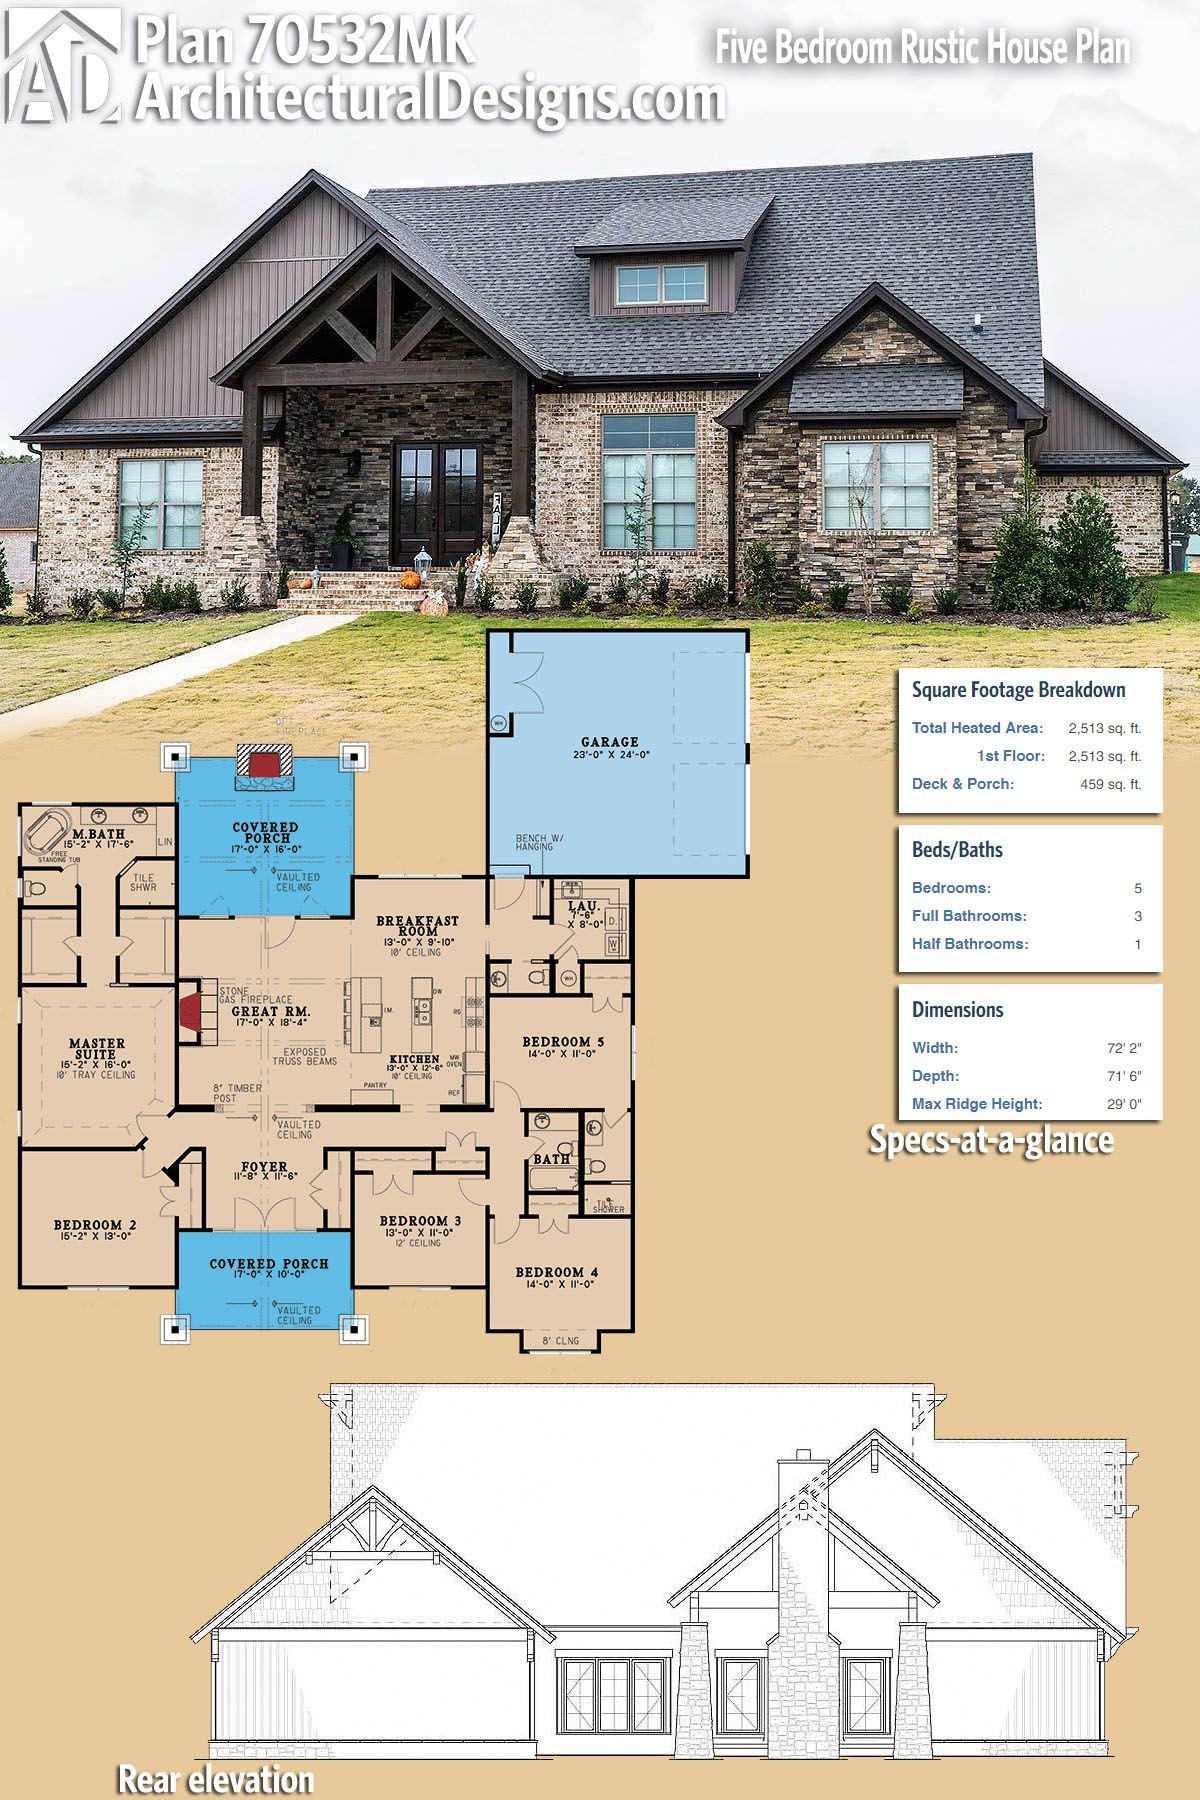 How to Draw My Own House Plans Lovely Plan Mk Five Bedroom Rustic House Plan In 2020